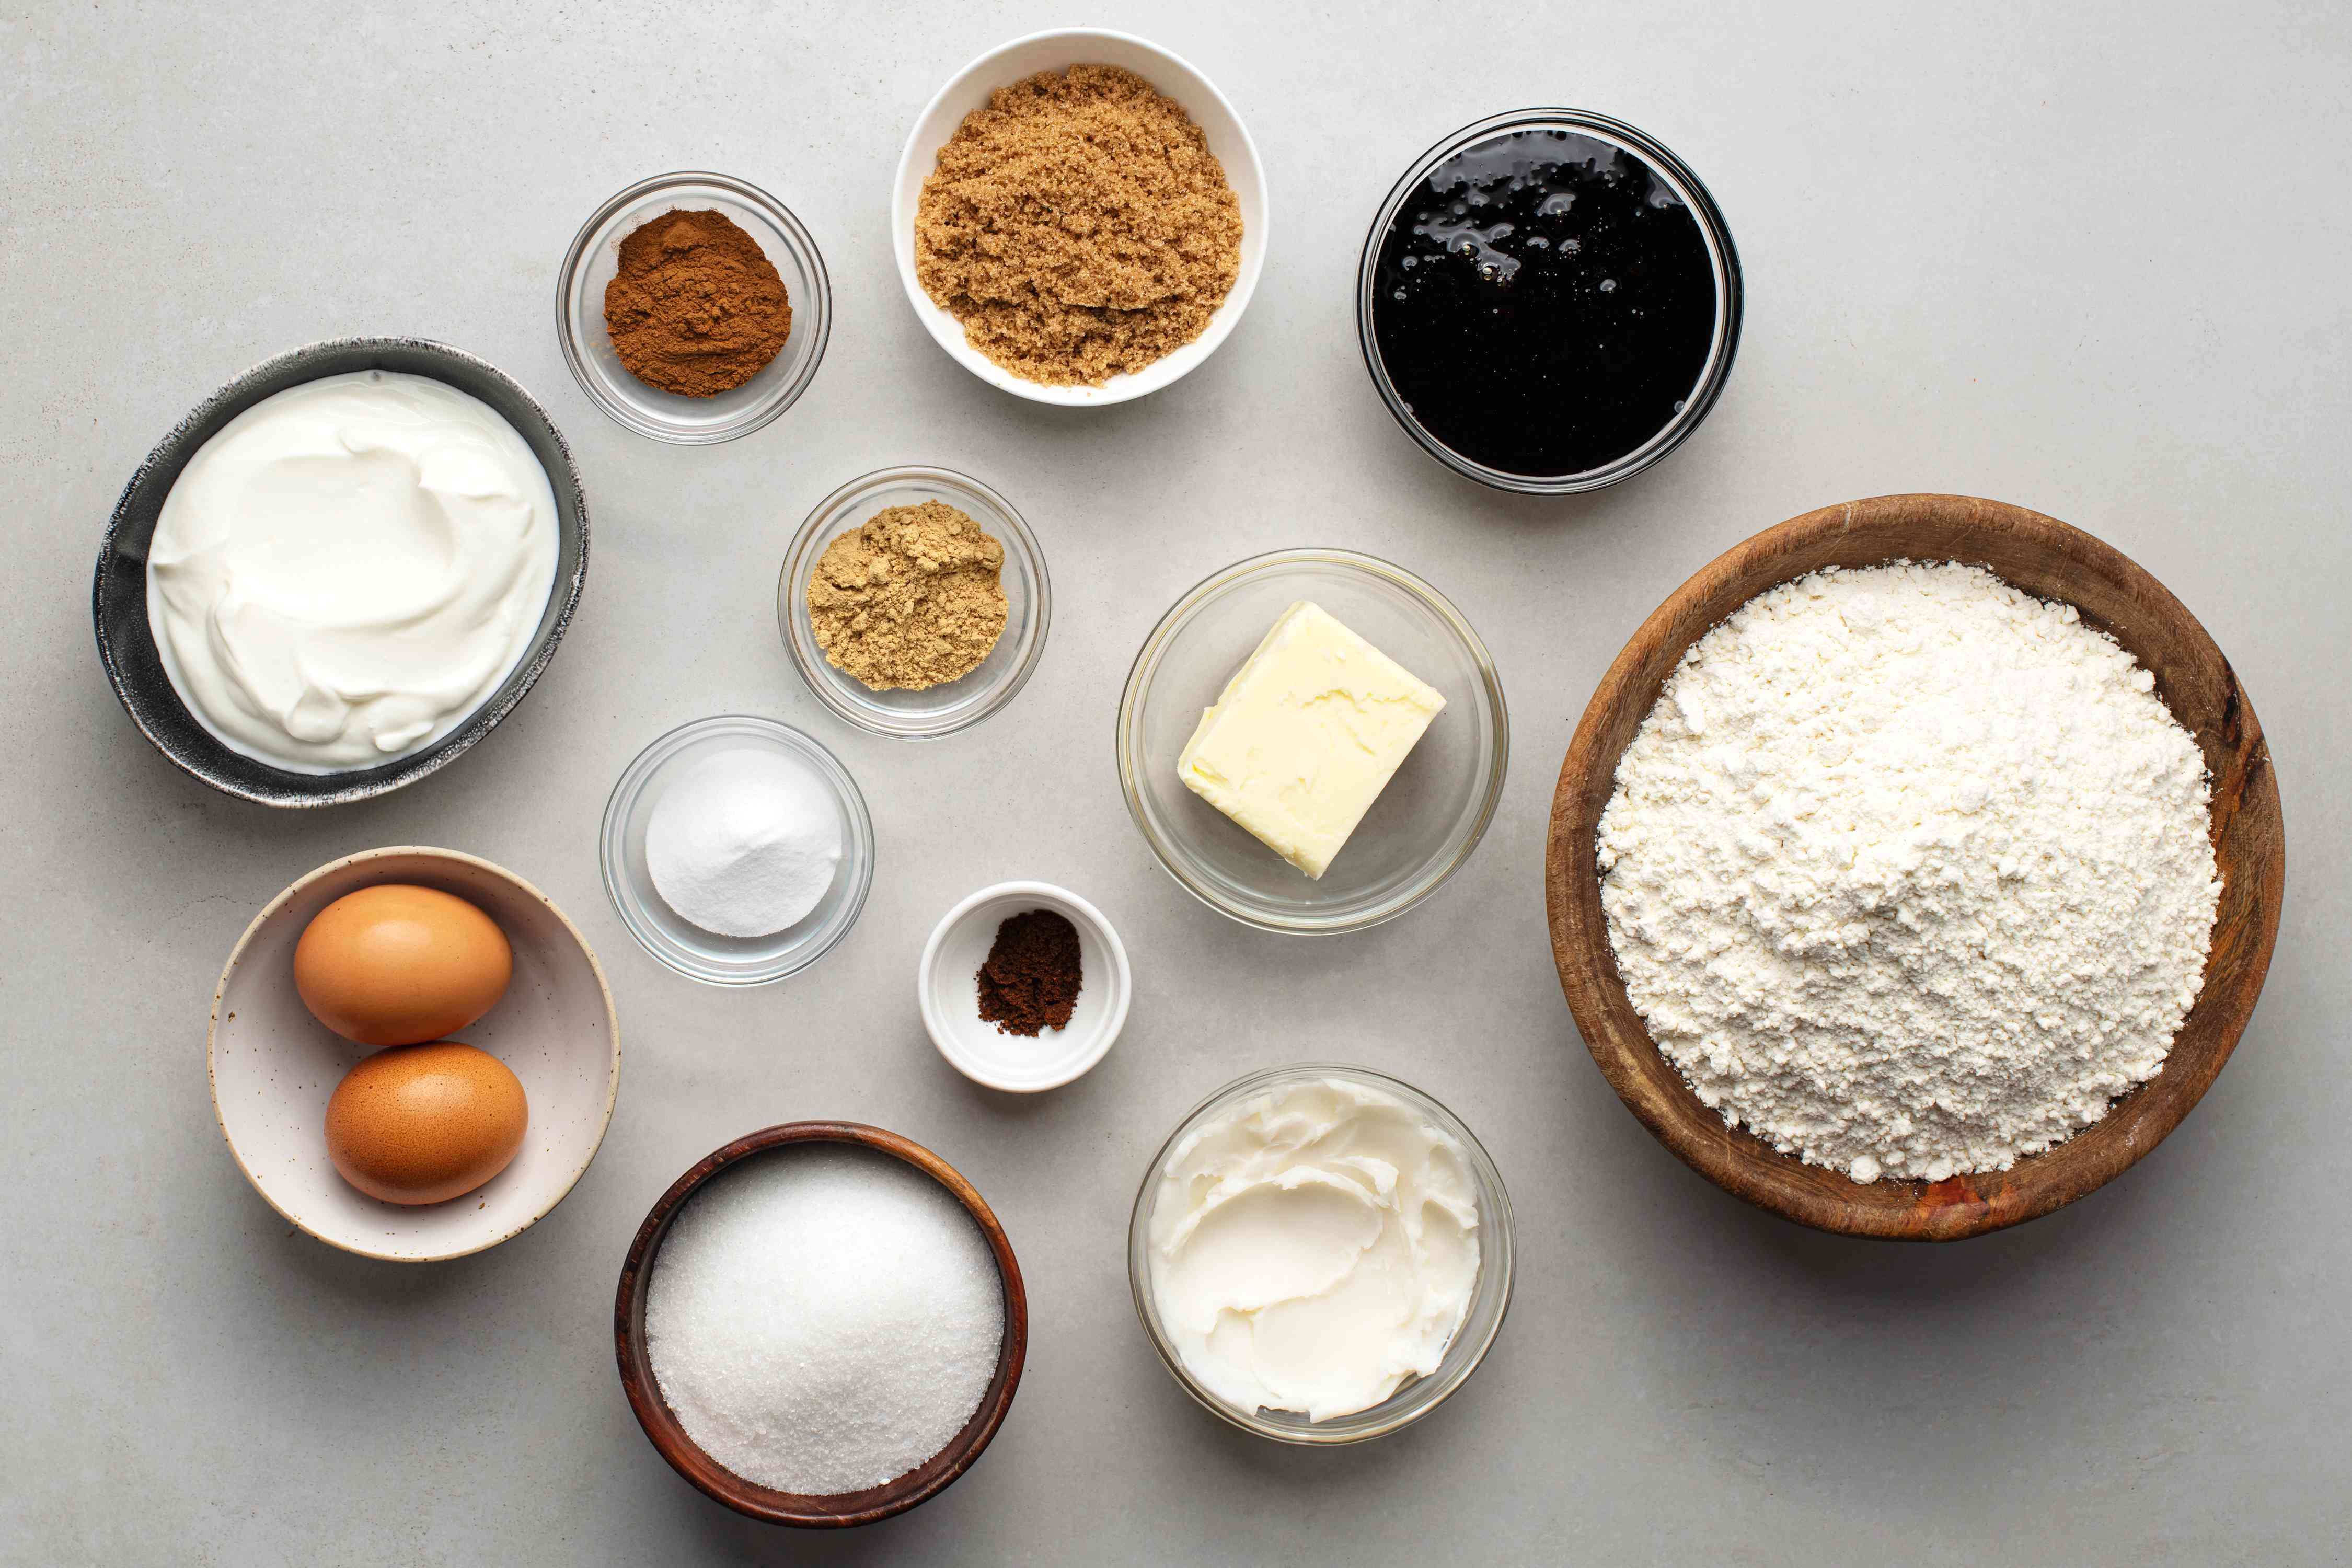 Old-Fashioned Molasses Cookies ingredients